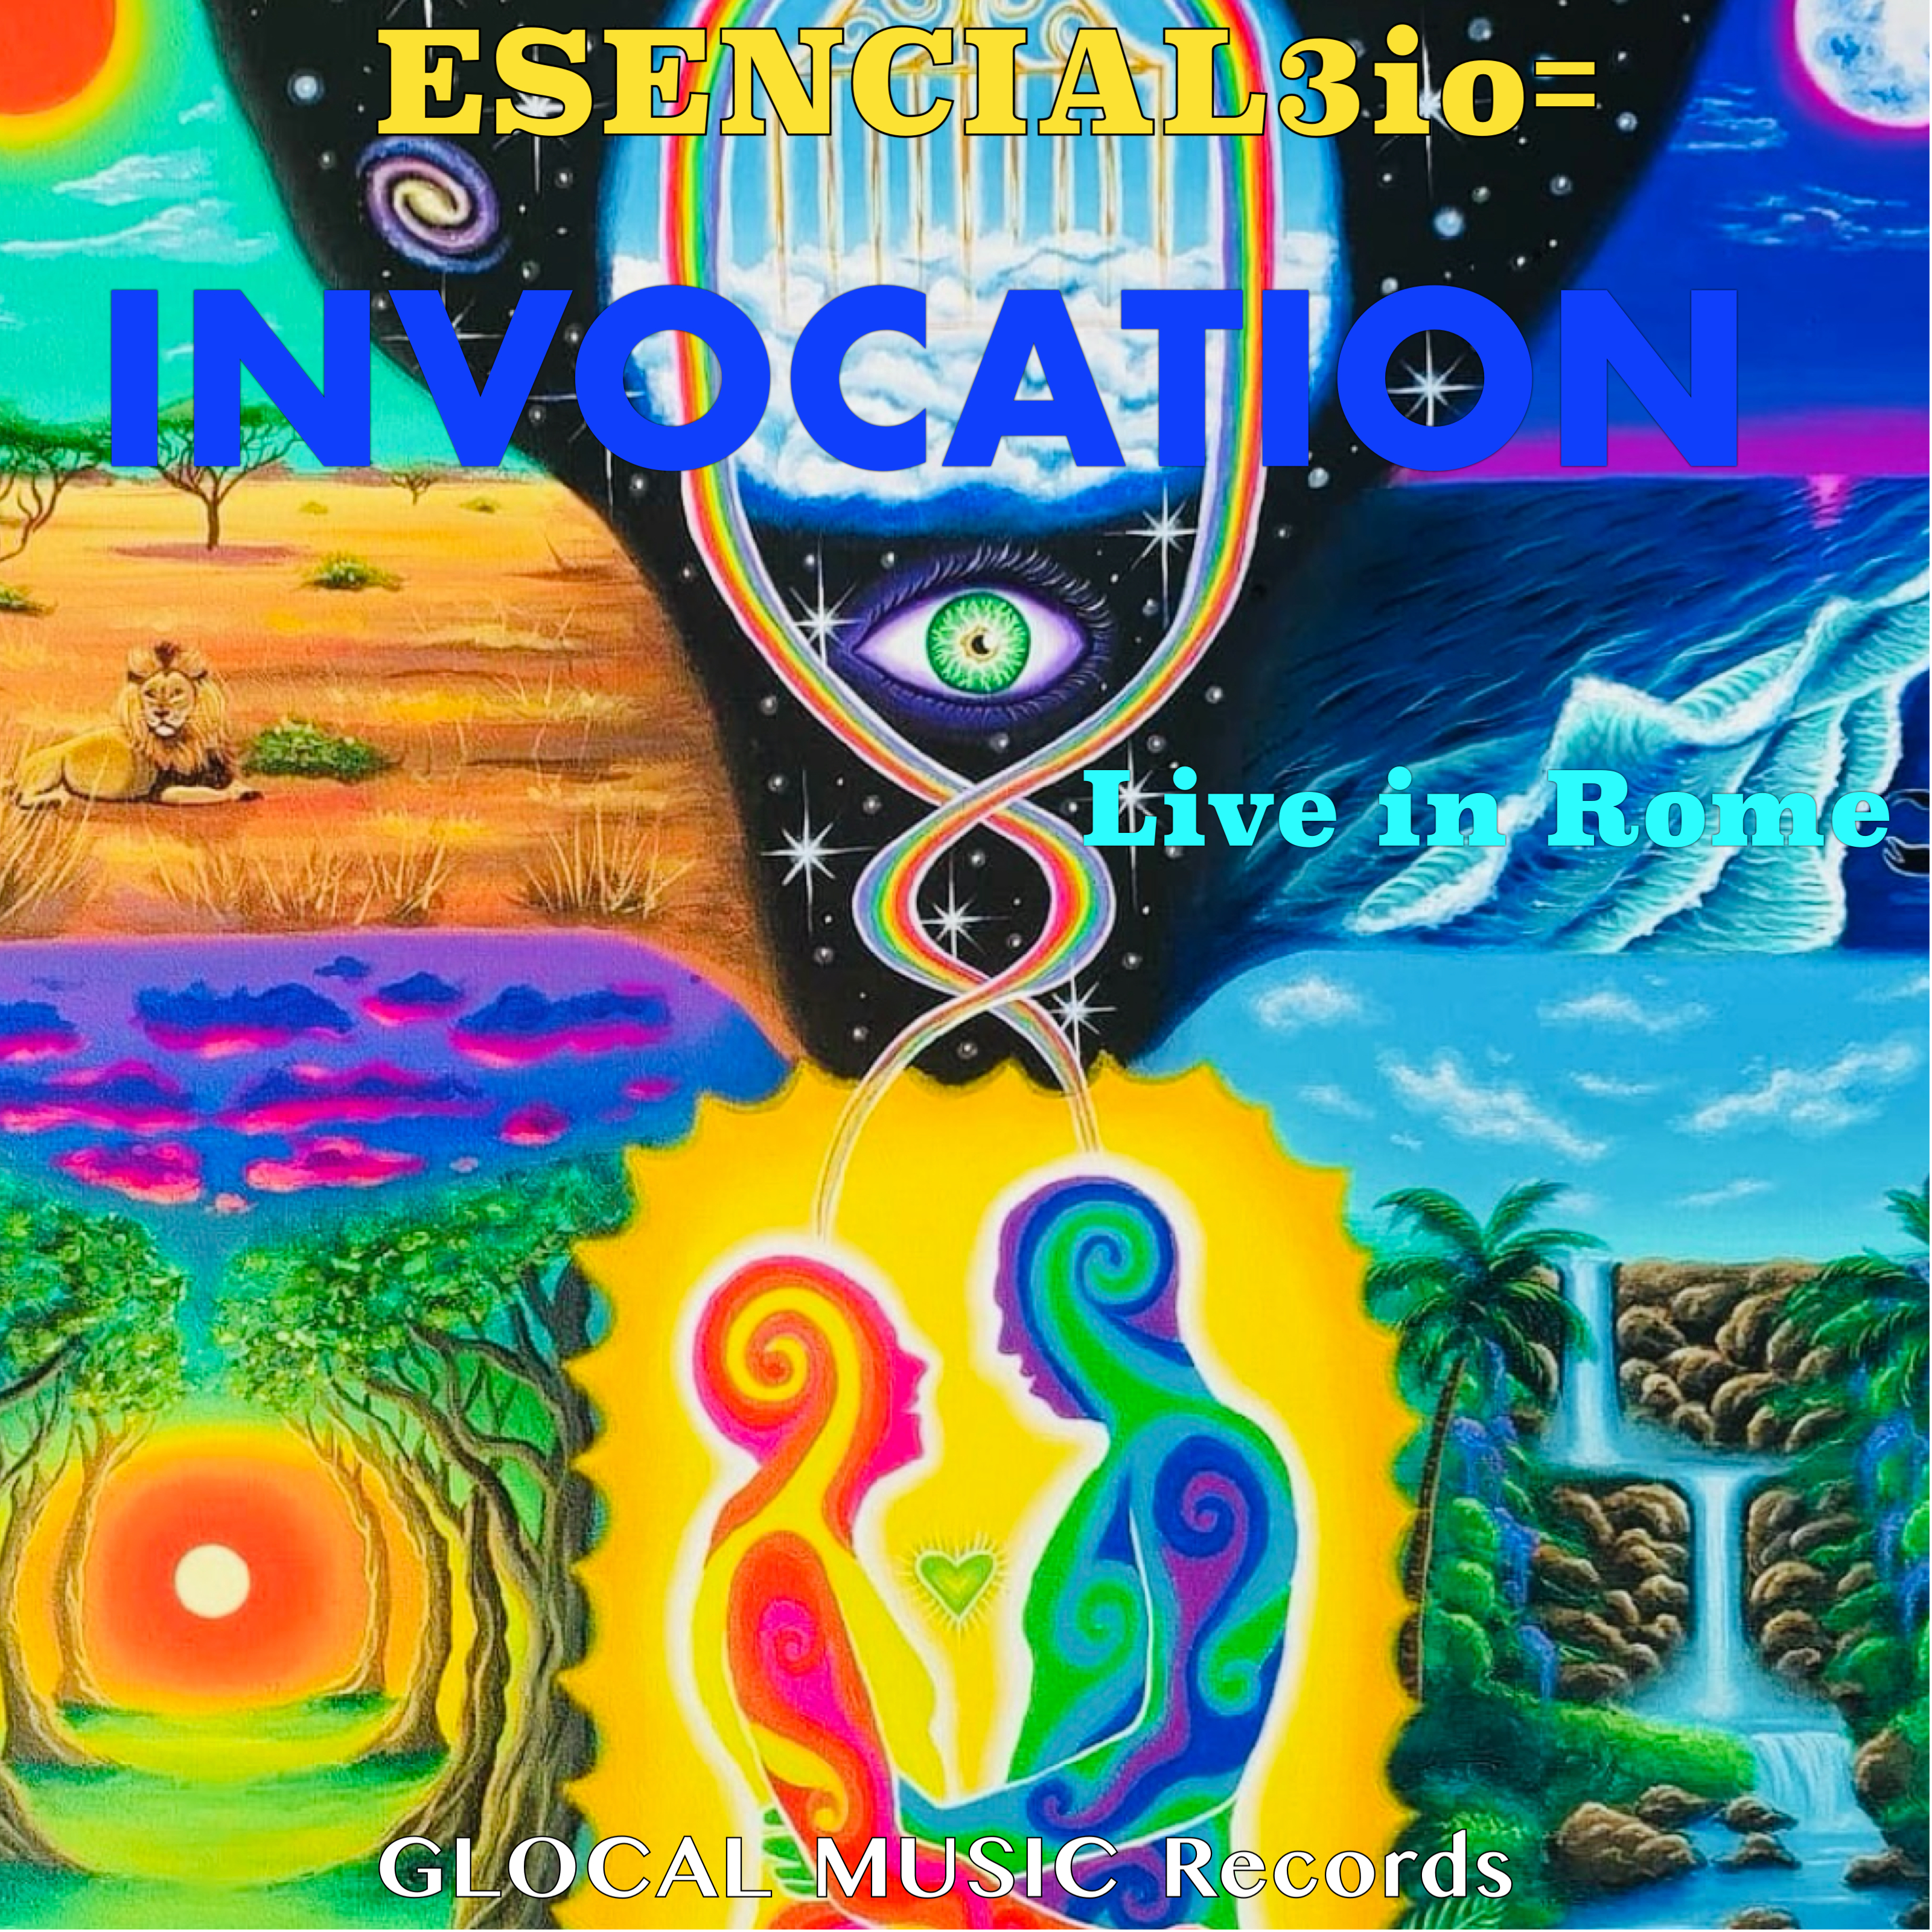 INVOCATION the latest Live Album by ESENCIAL3io=